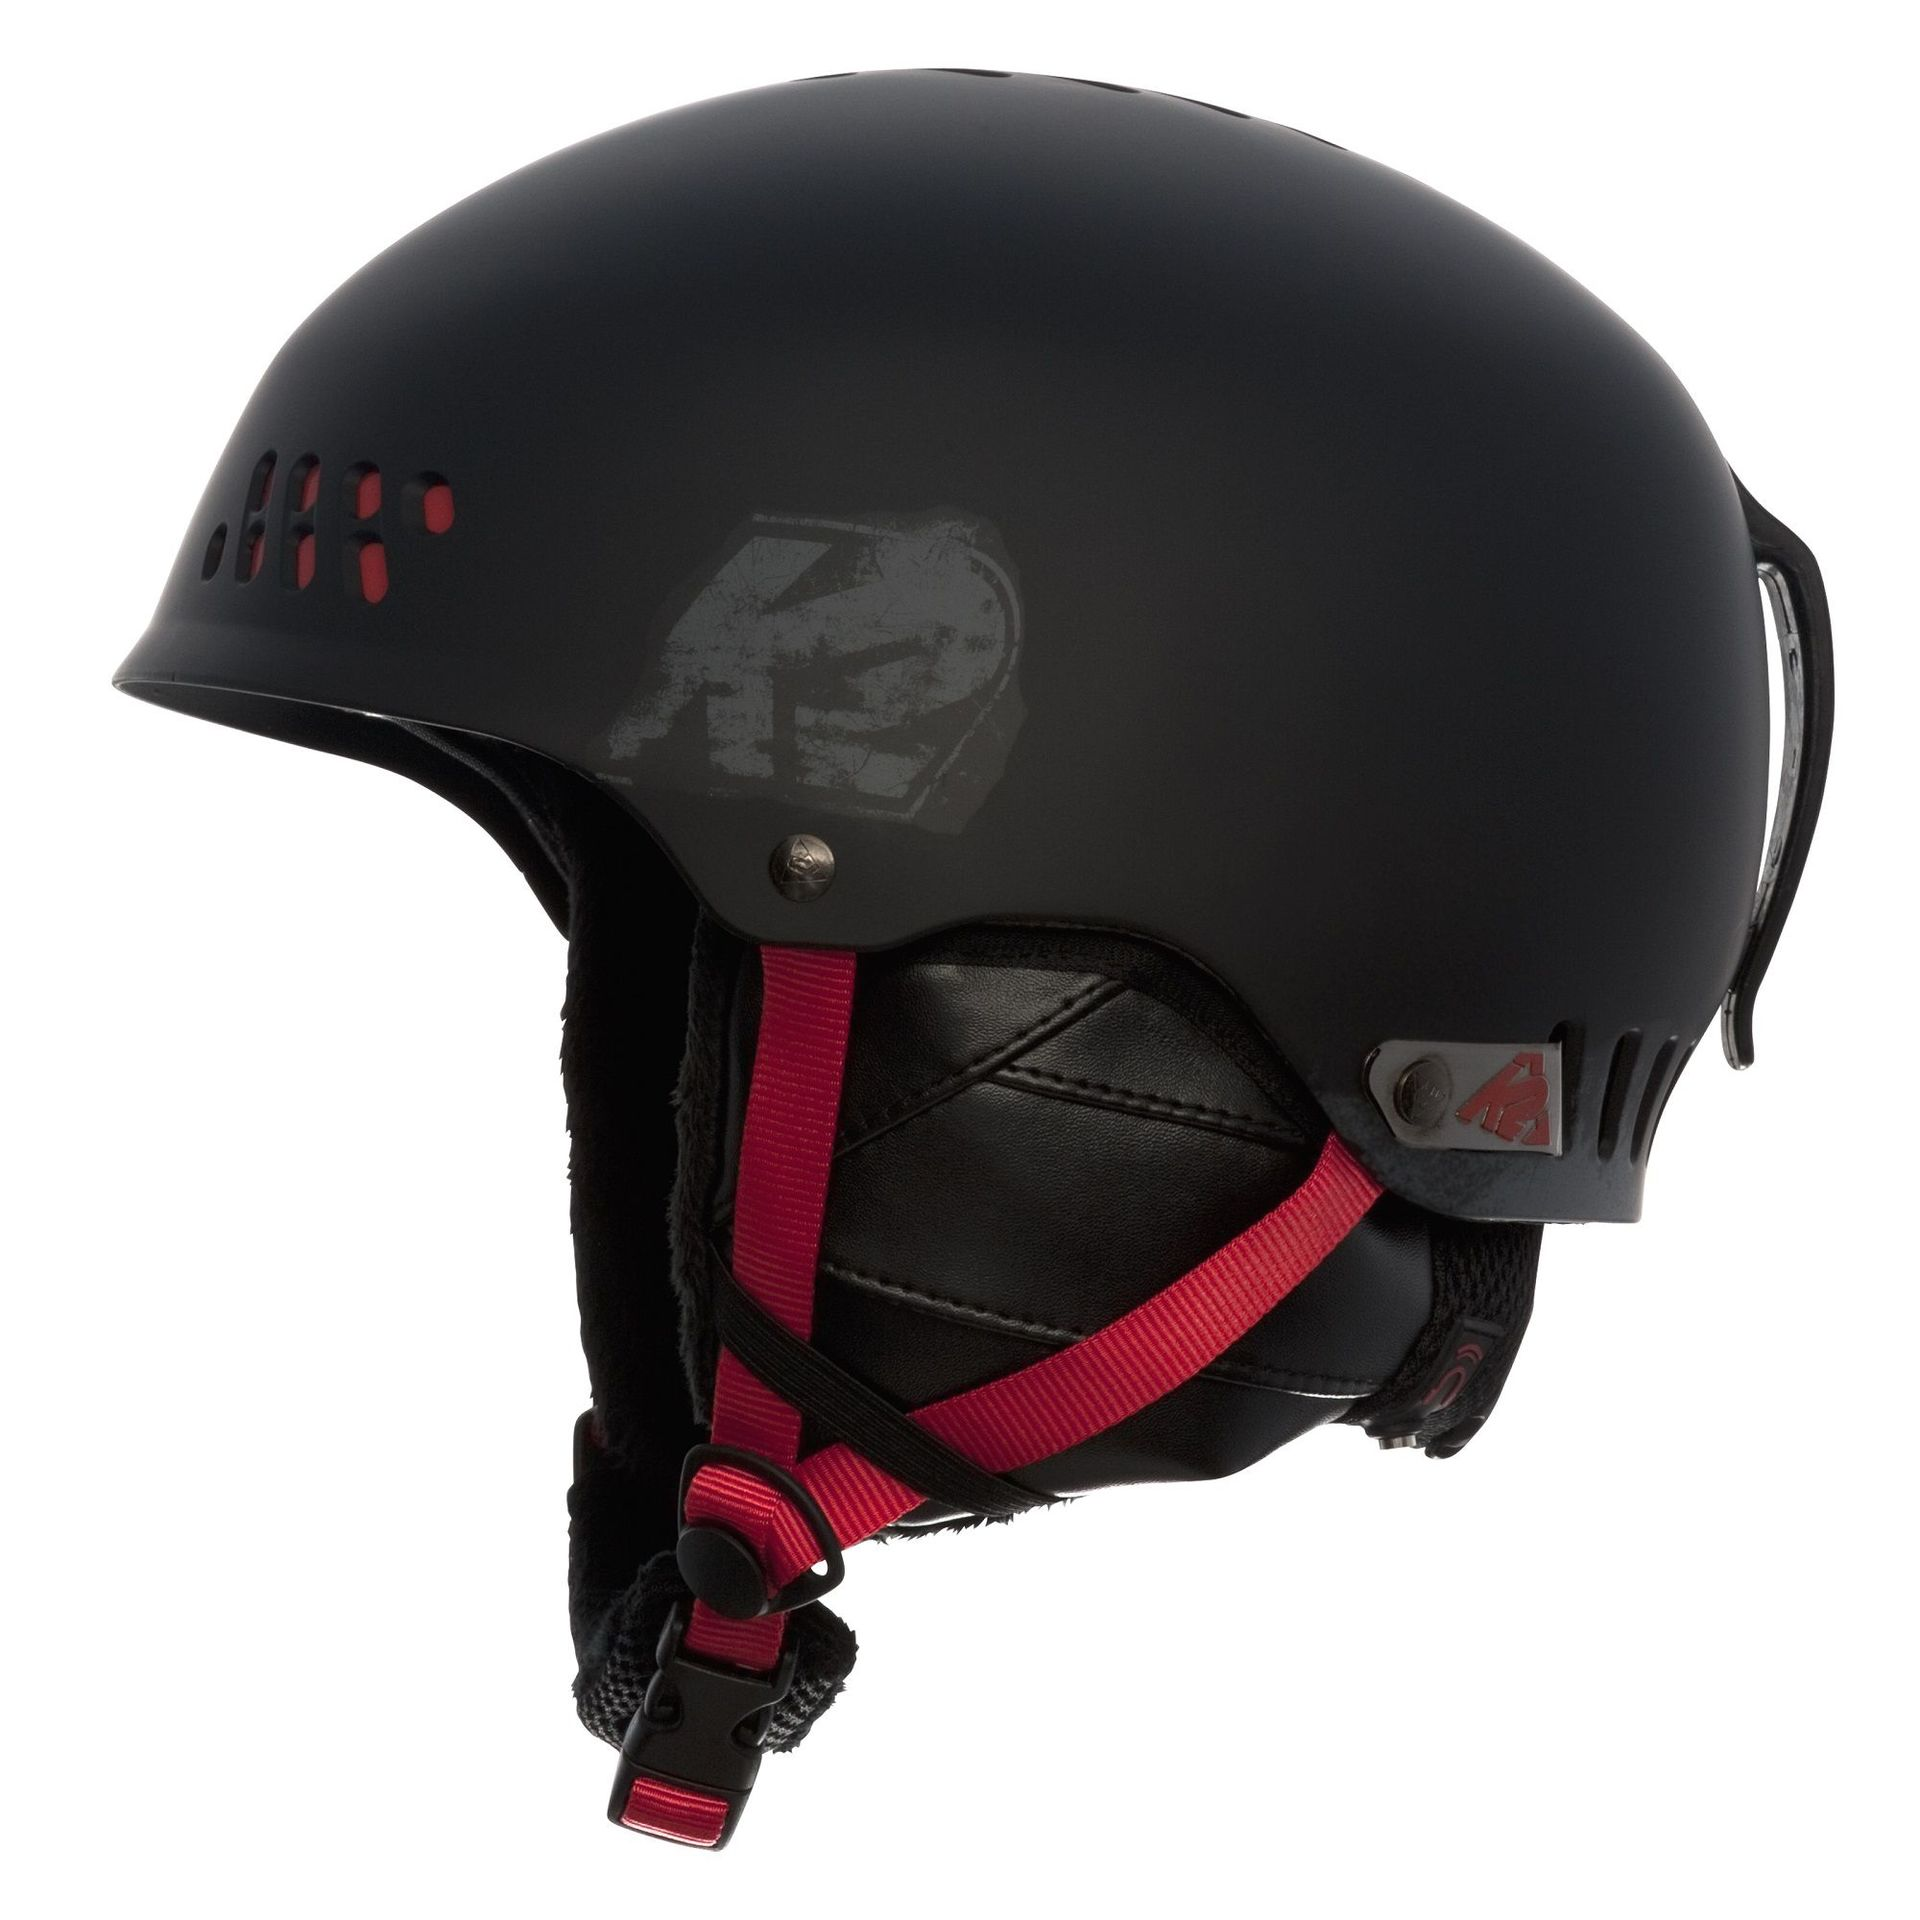 KASK K2 SPORTS PHASE PRO BLACK|RED